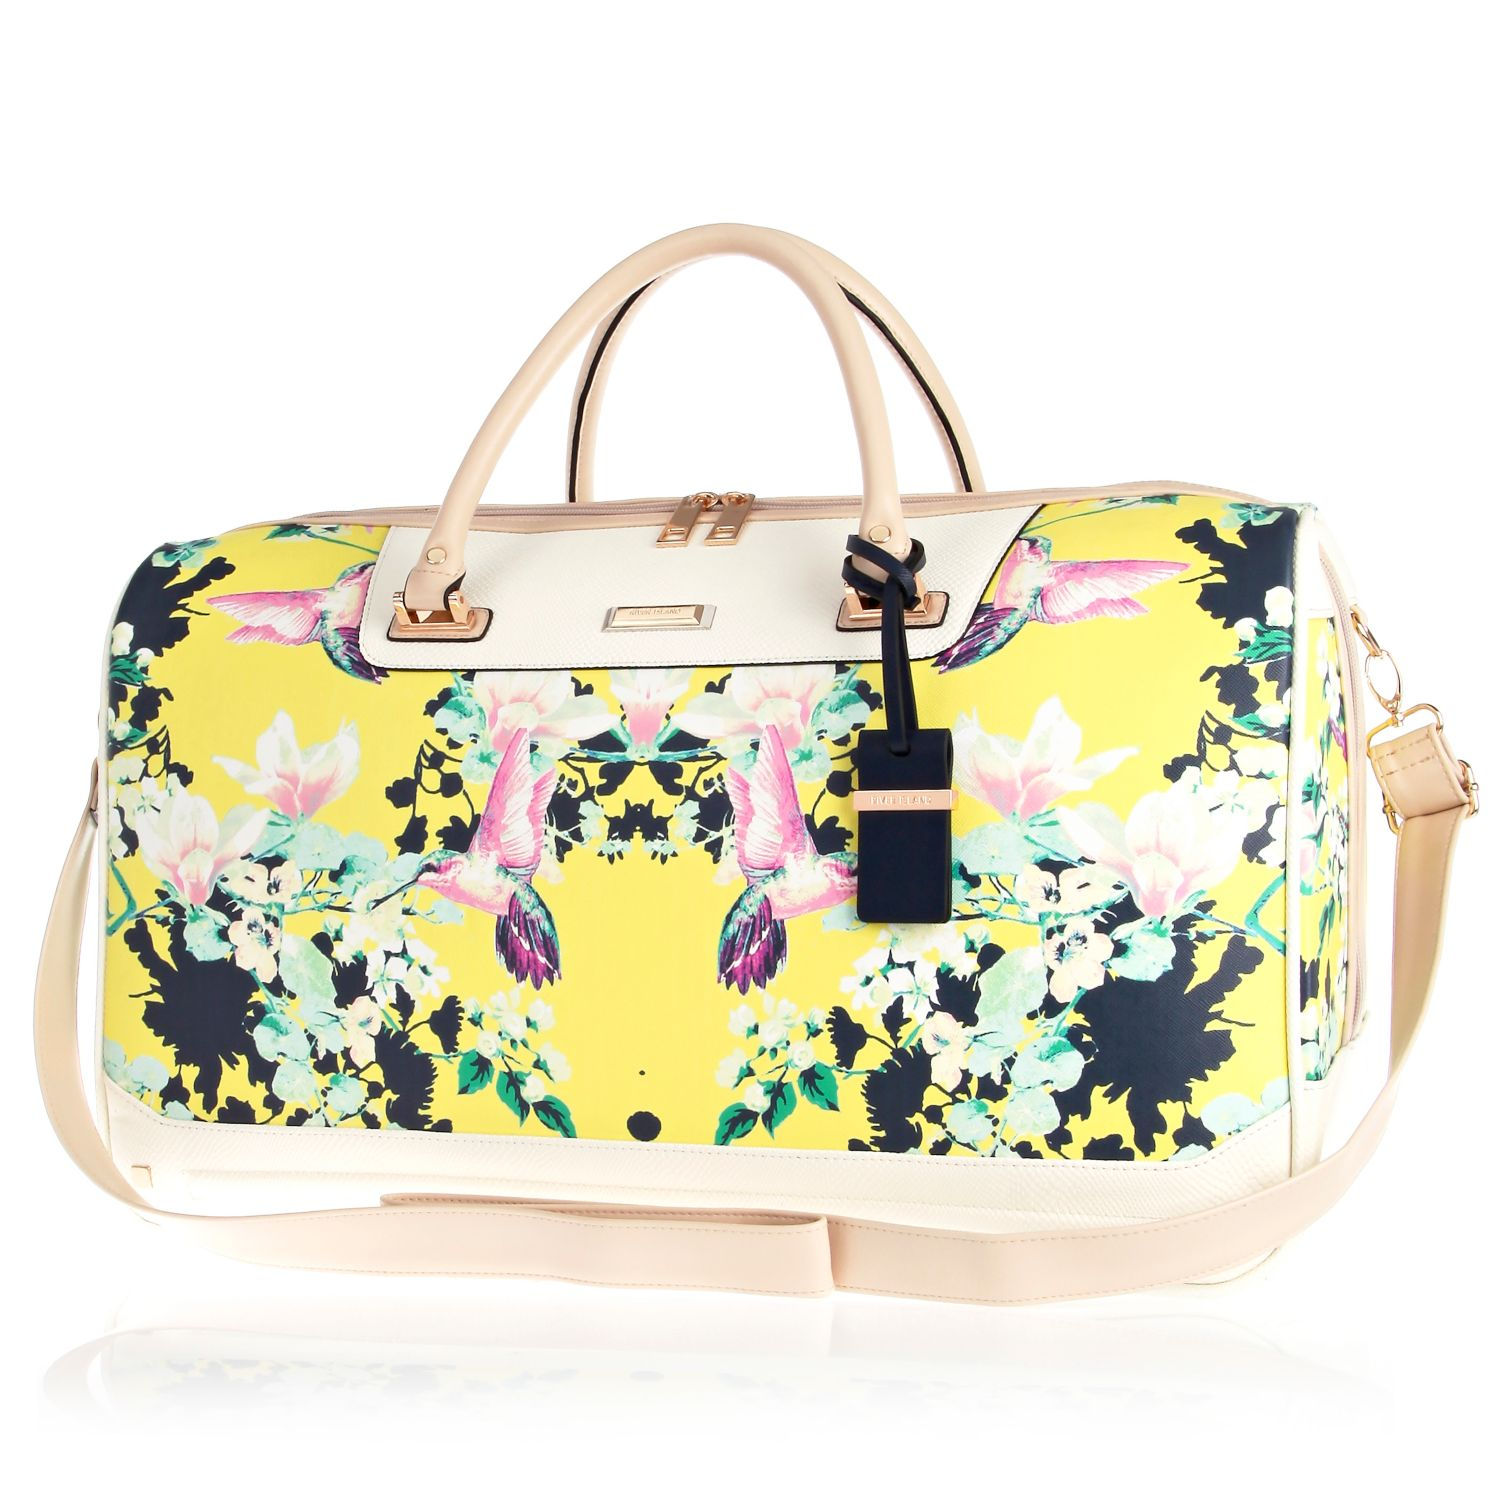 River island Yellow Floral Print Weekend Bag in Yellow | Lyst